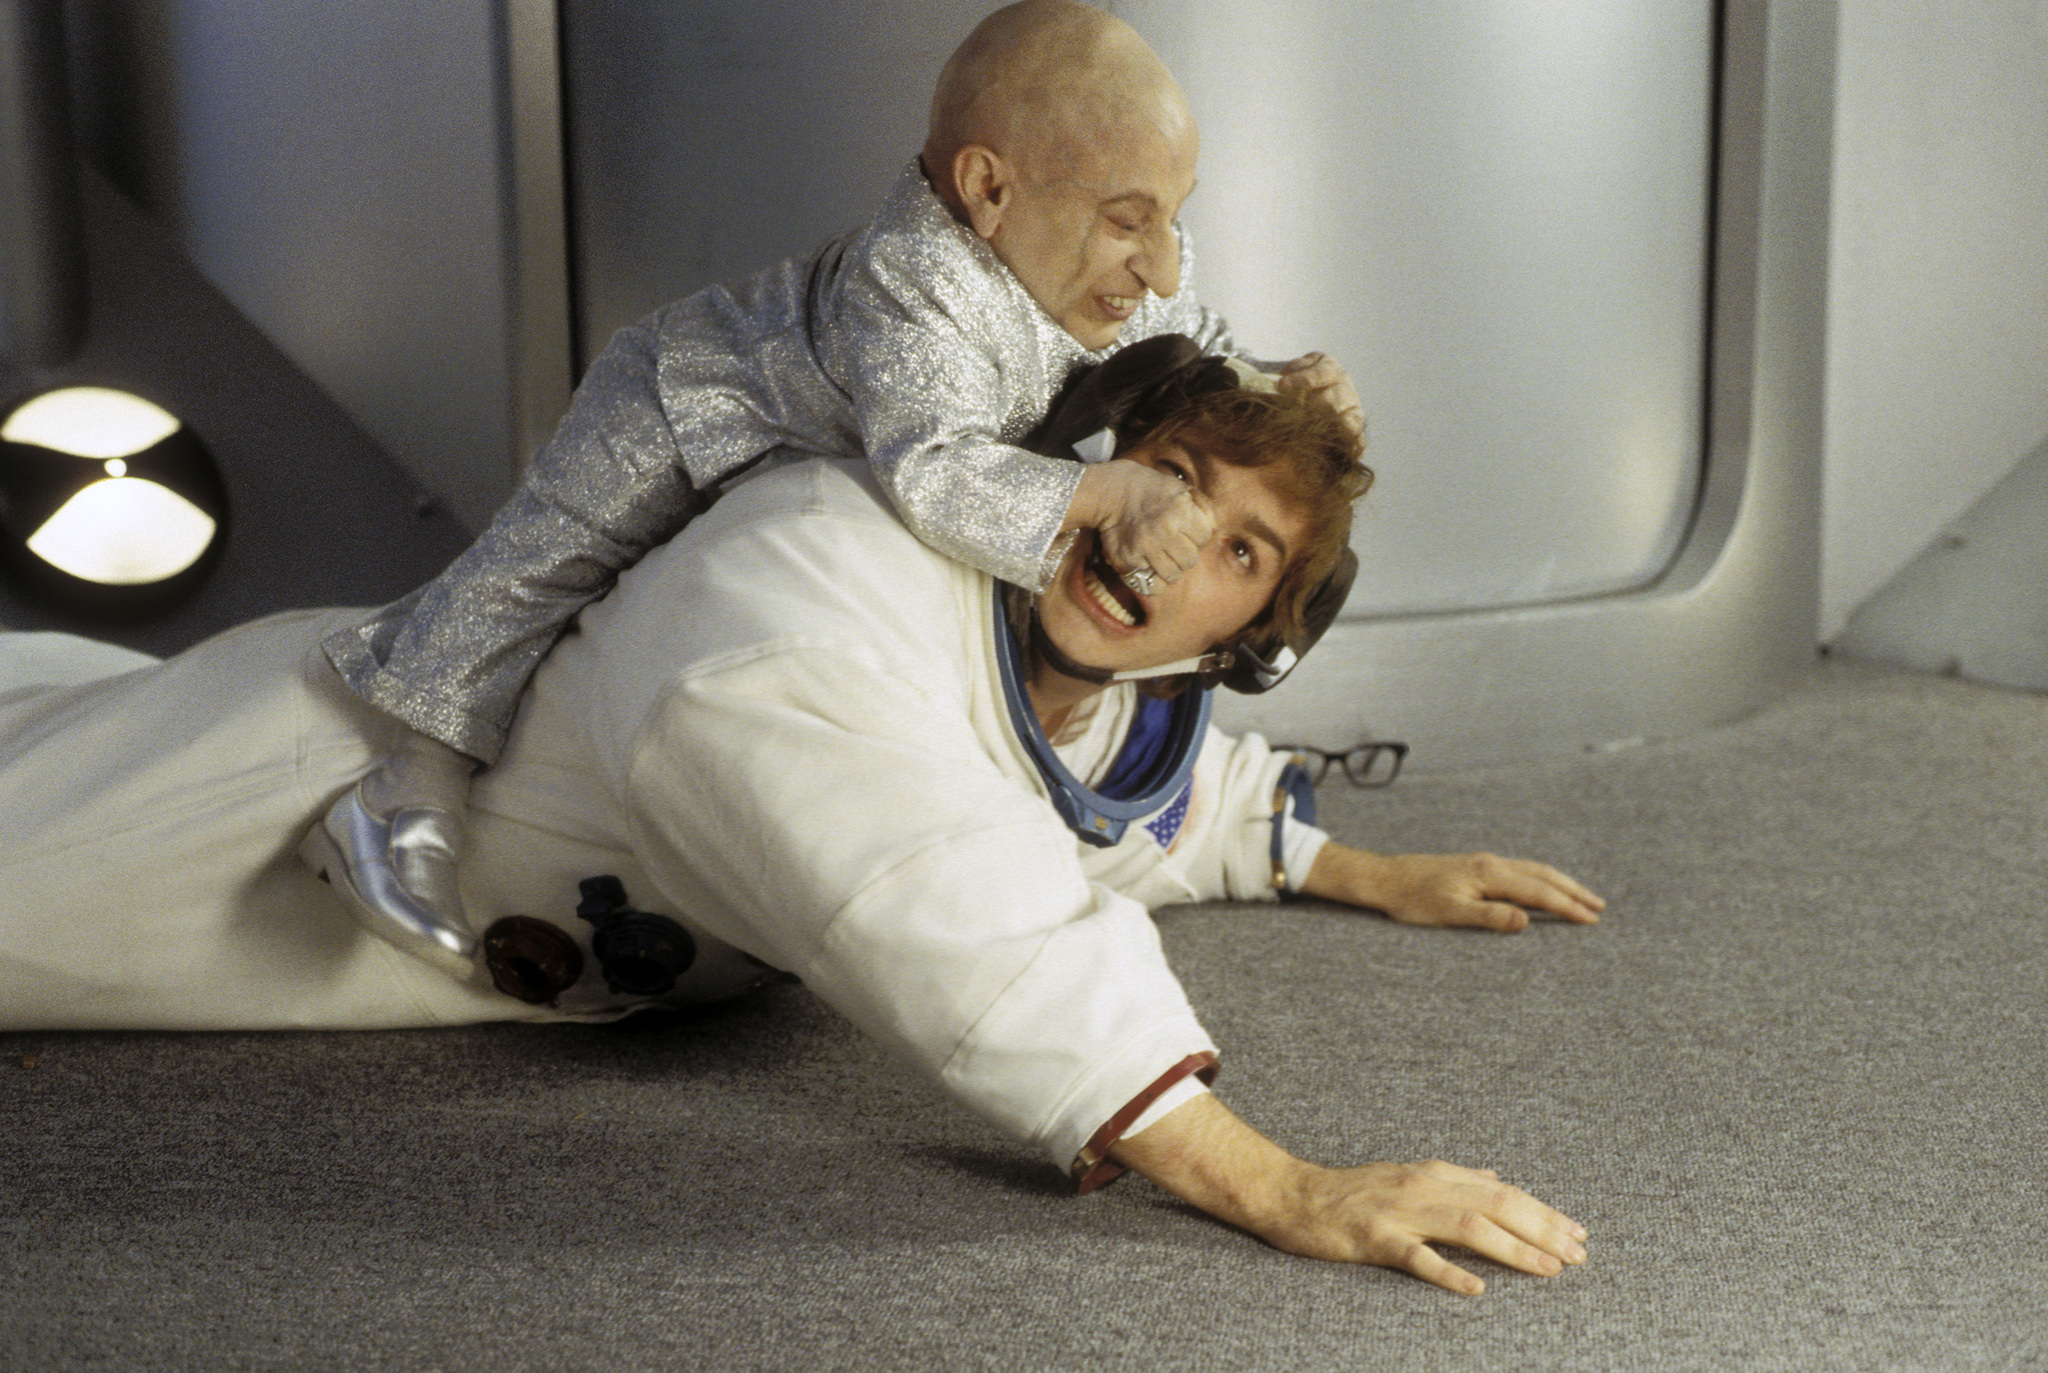 Mike Myers and Verne Troyer in Austin Powers: The Spy Who Shagged Me (1999)